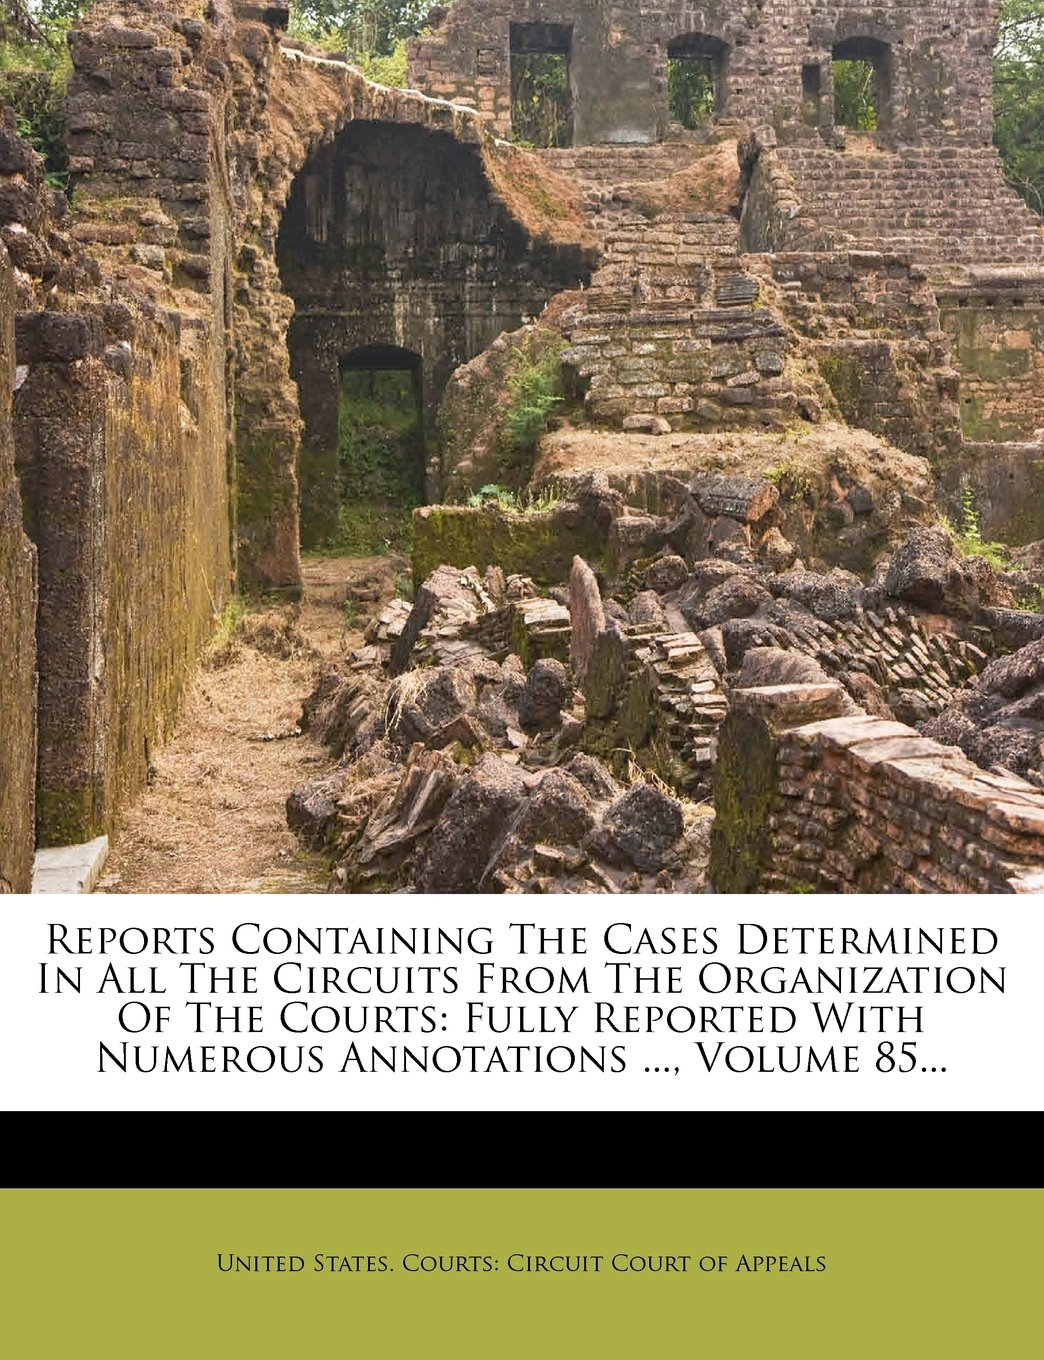 Reports Containing The Cases Determined In All The Circuits From The Organization Of The Courts: Fully Reported With Numerous Annotations ..., Volume 85... pdf